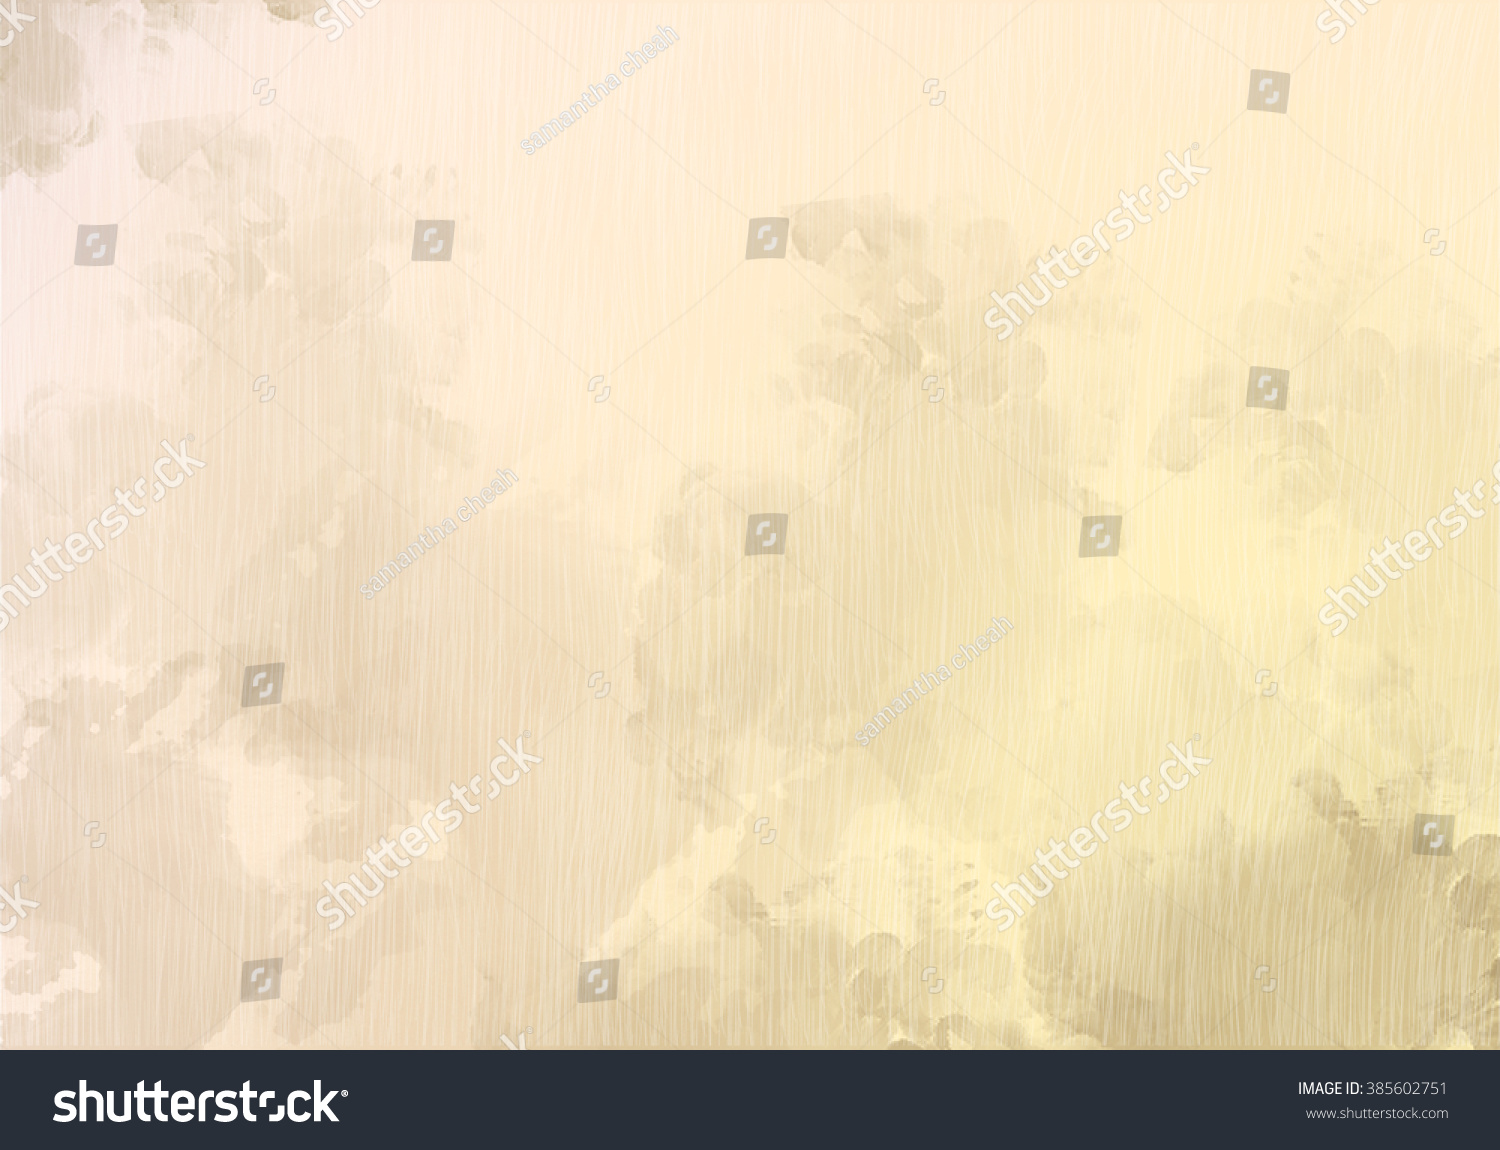 Grunge Painting Background Idea Template Wallpaper Stock ...